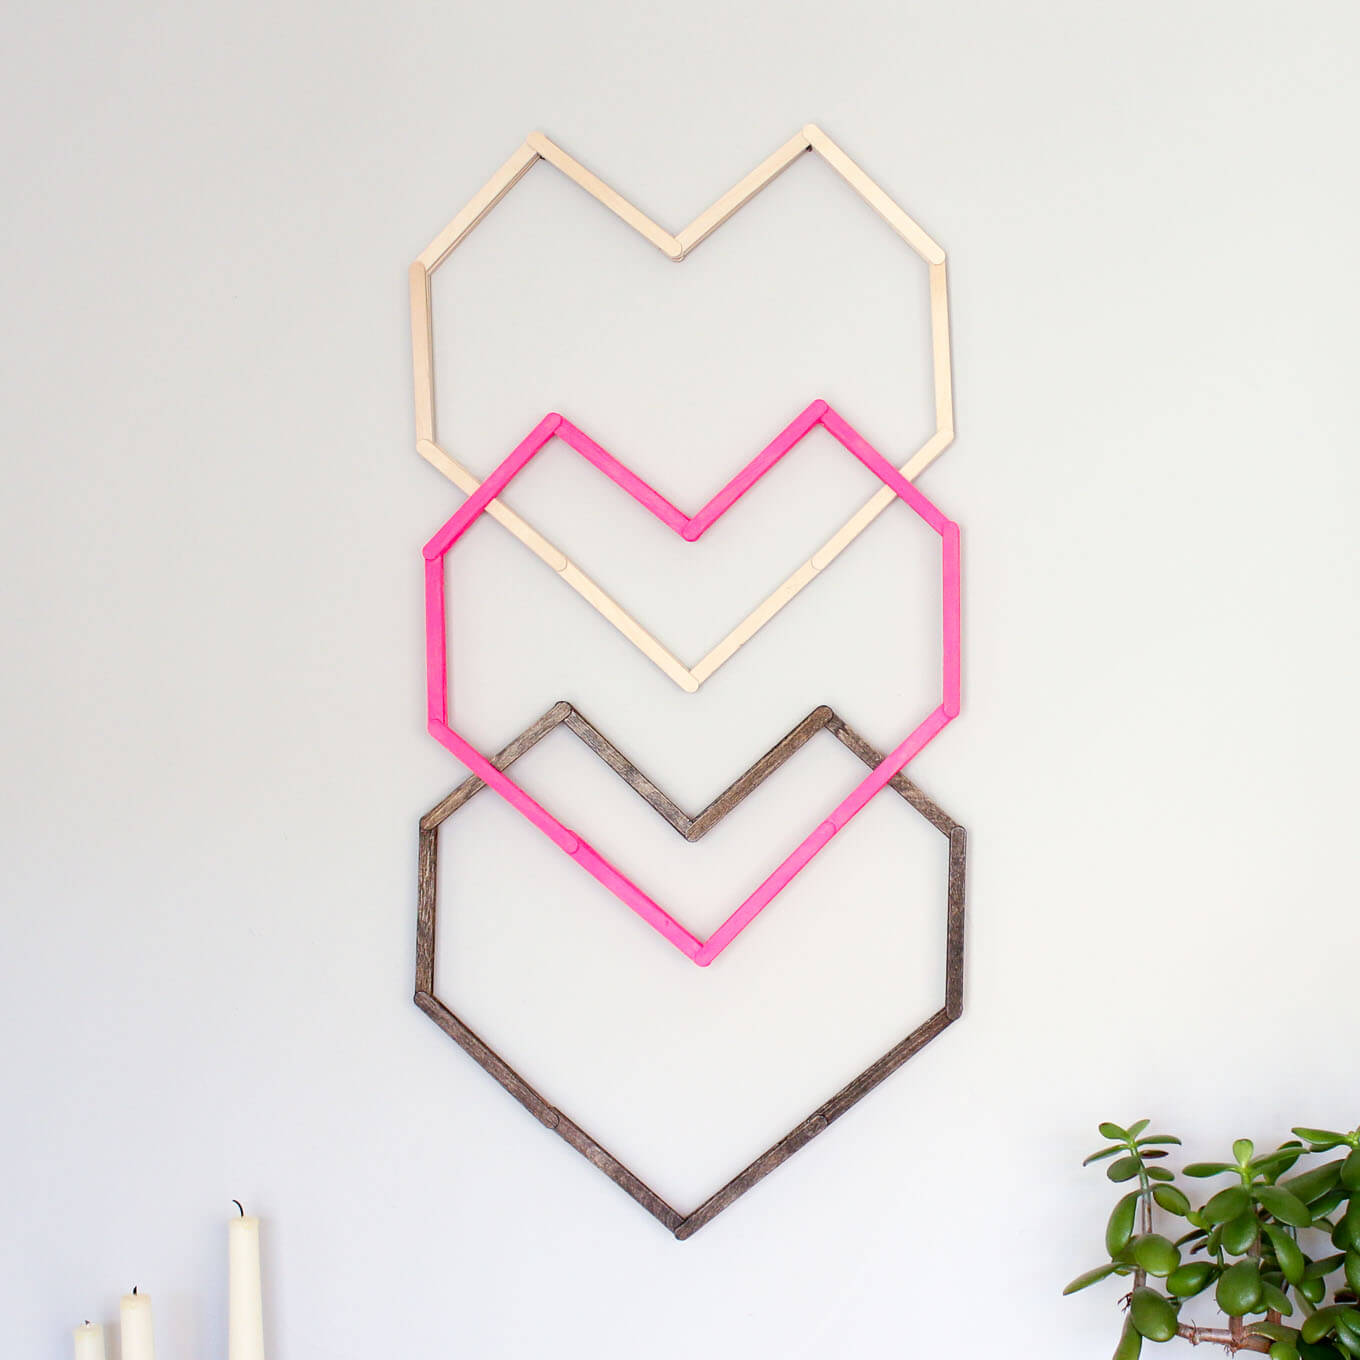 Geometric Heart DIY Wall Art & Geometric Heart DIY Wall Art - With Popsicle Sticks!